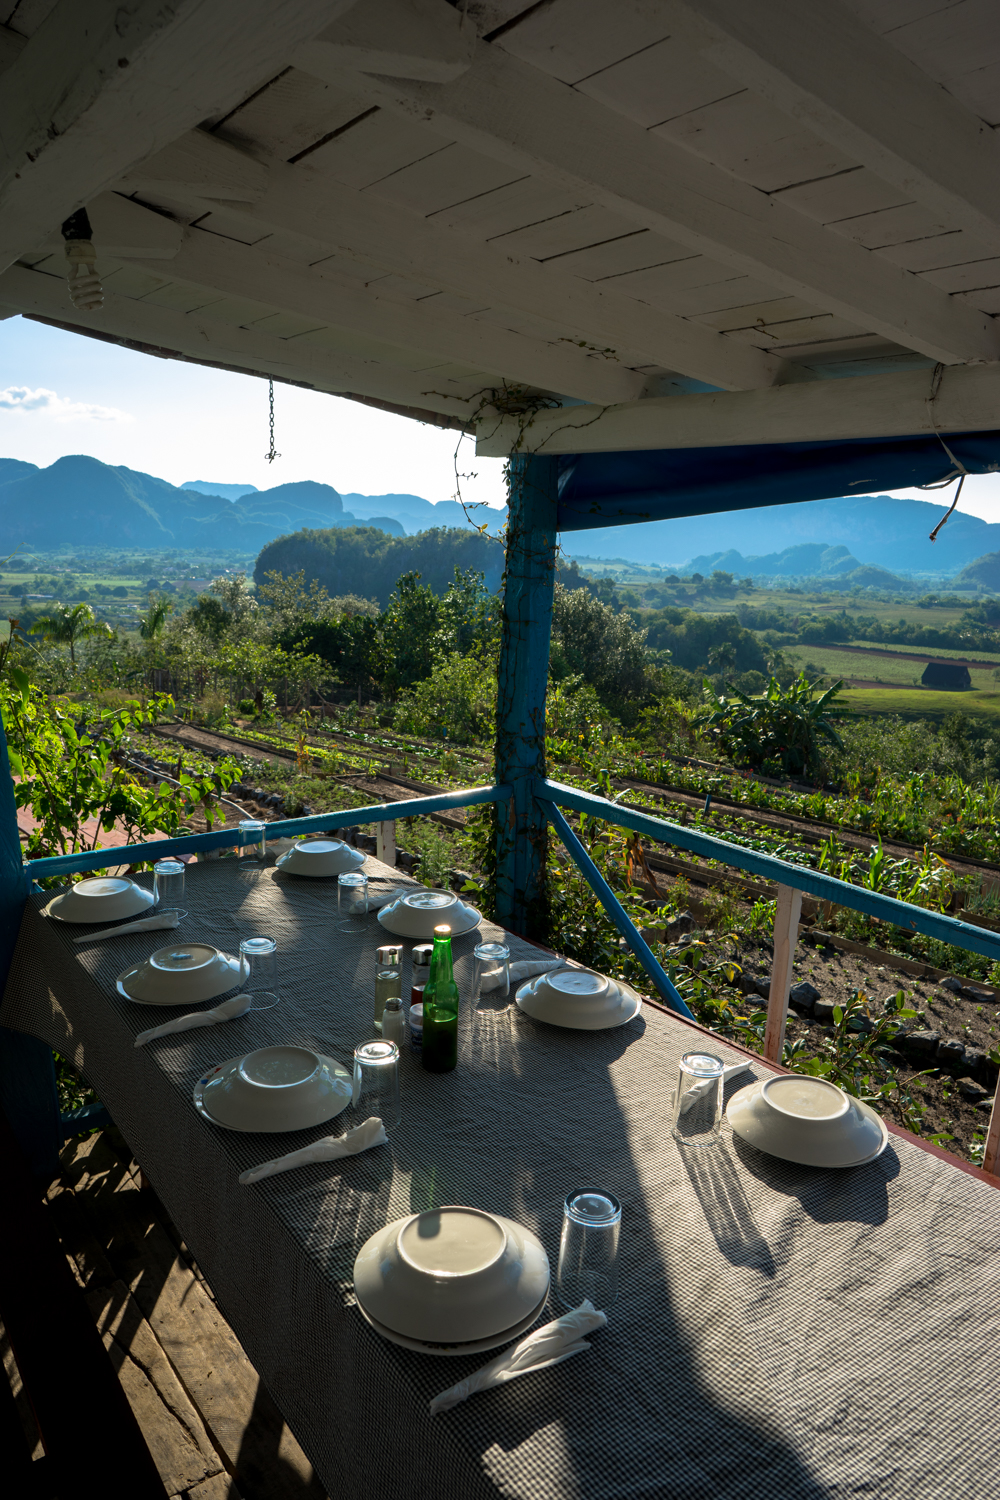 Sunset dinner at the Finca Agroecologica El Paraiso.